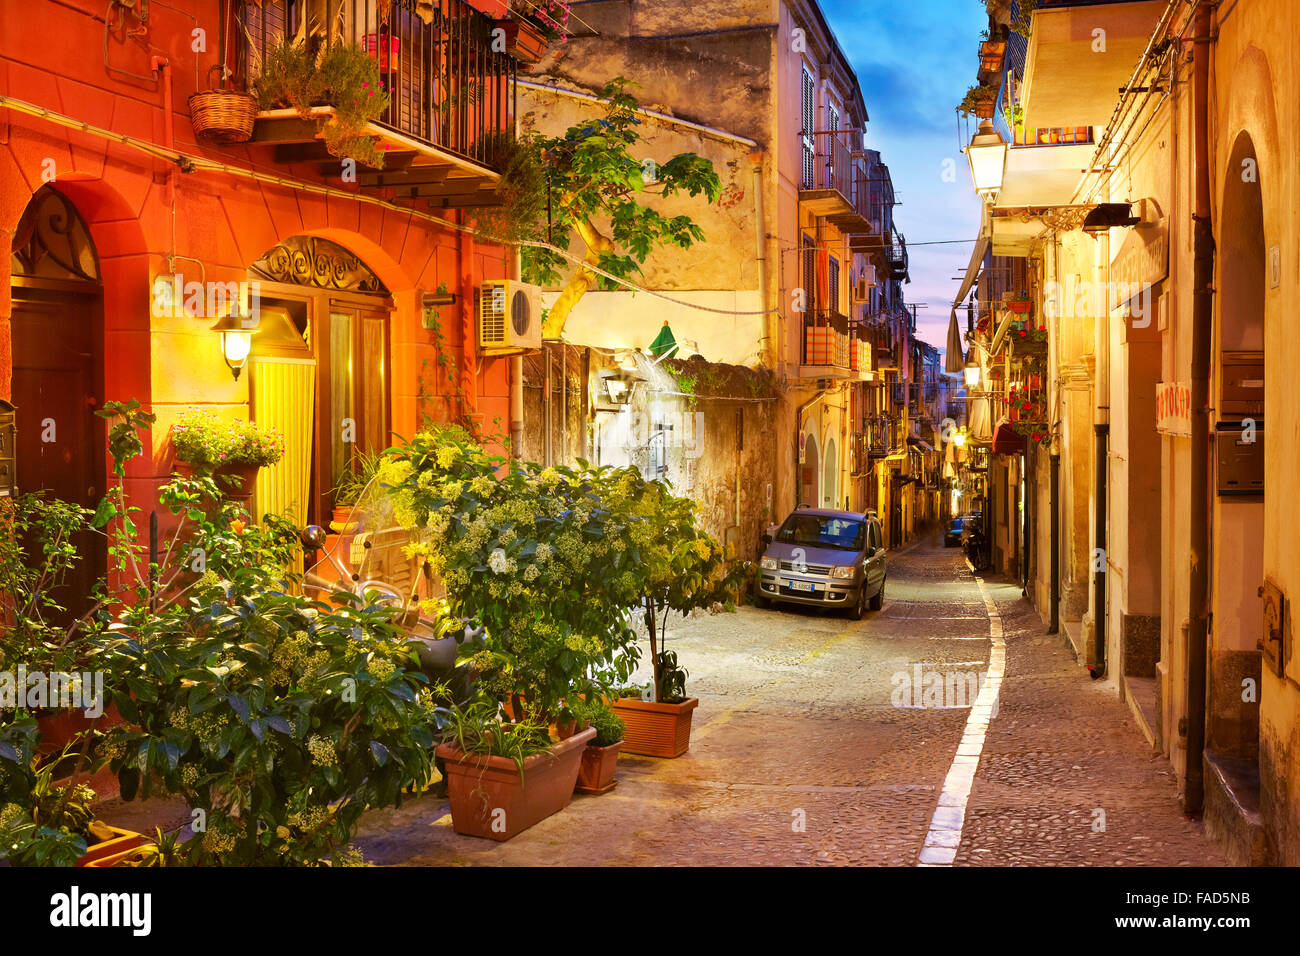 Old town street at evening lighting, Cefalu, Sicily, Italy Stock Photo